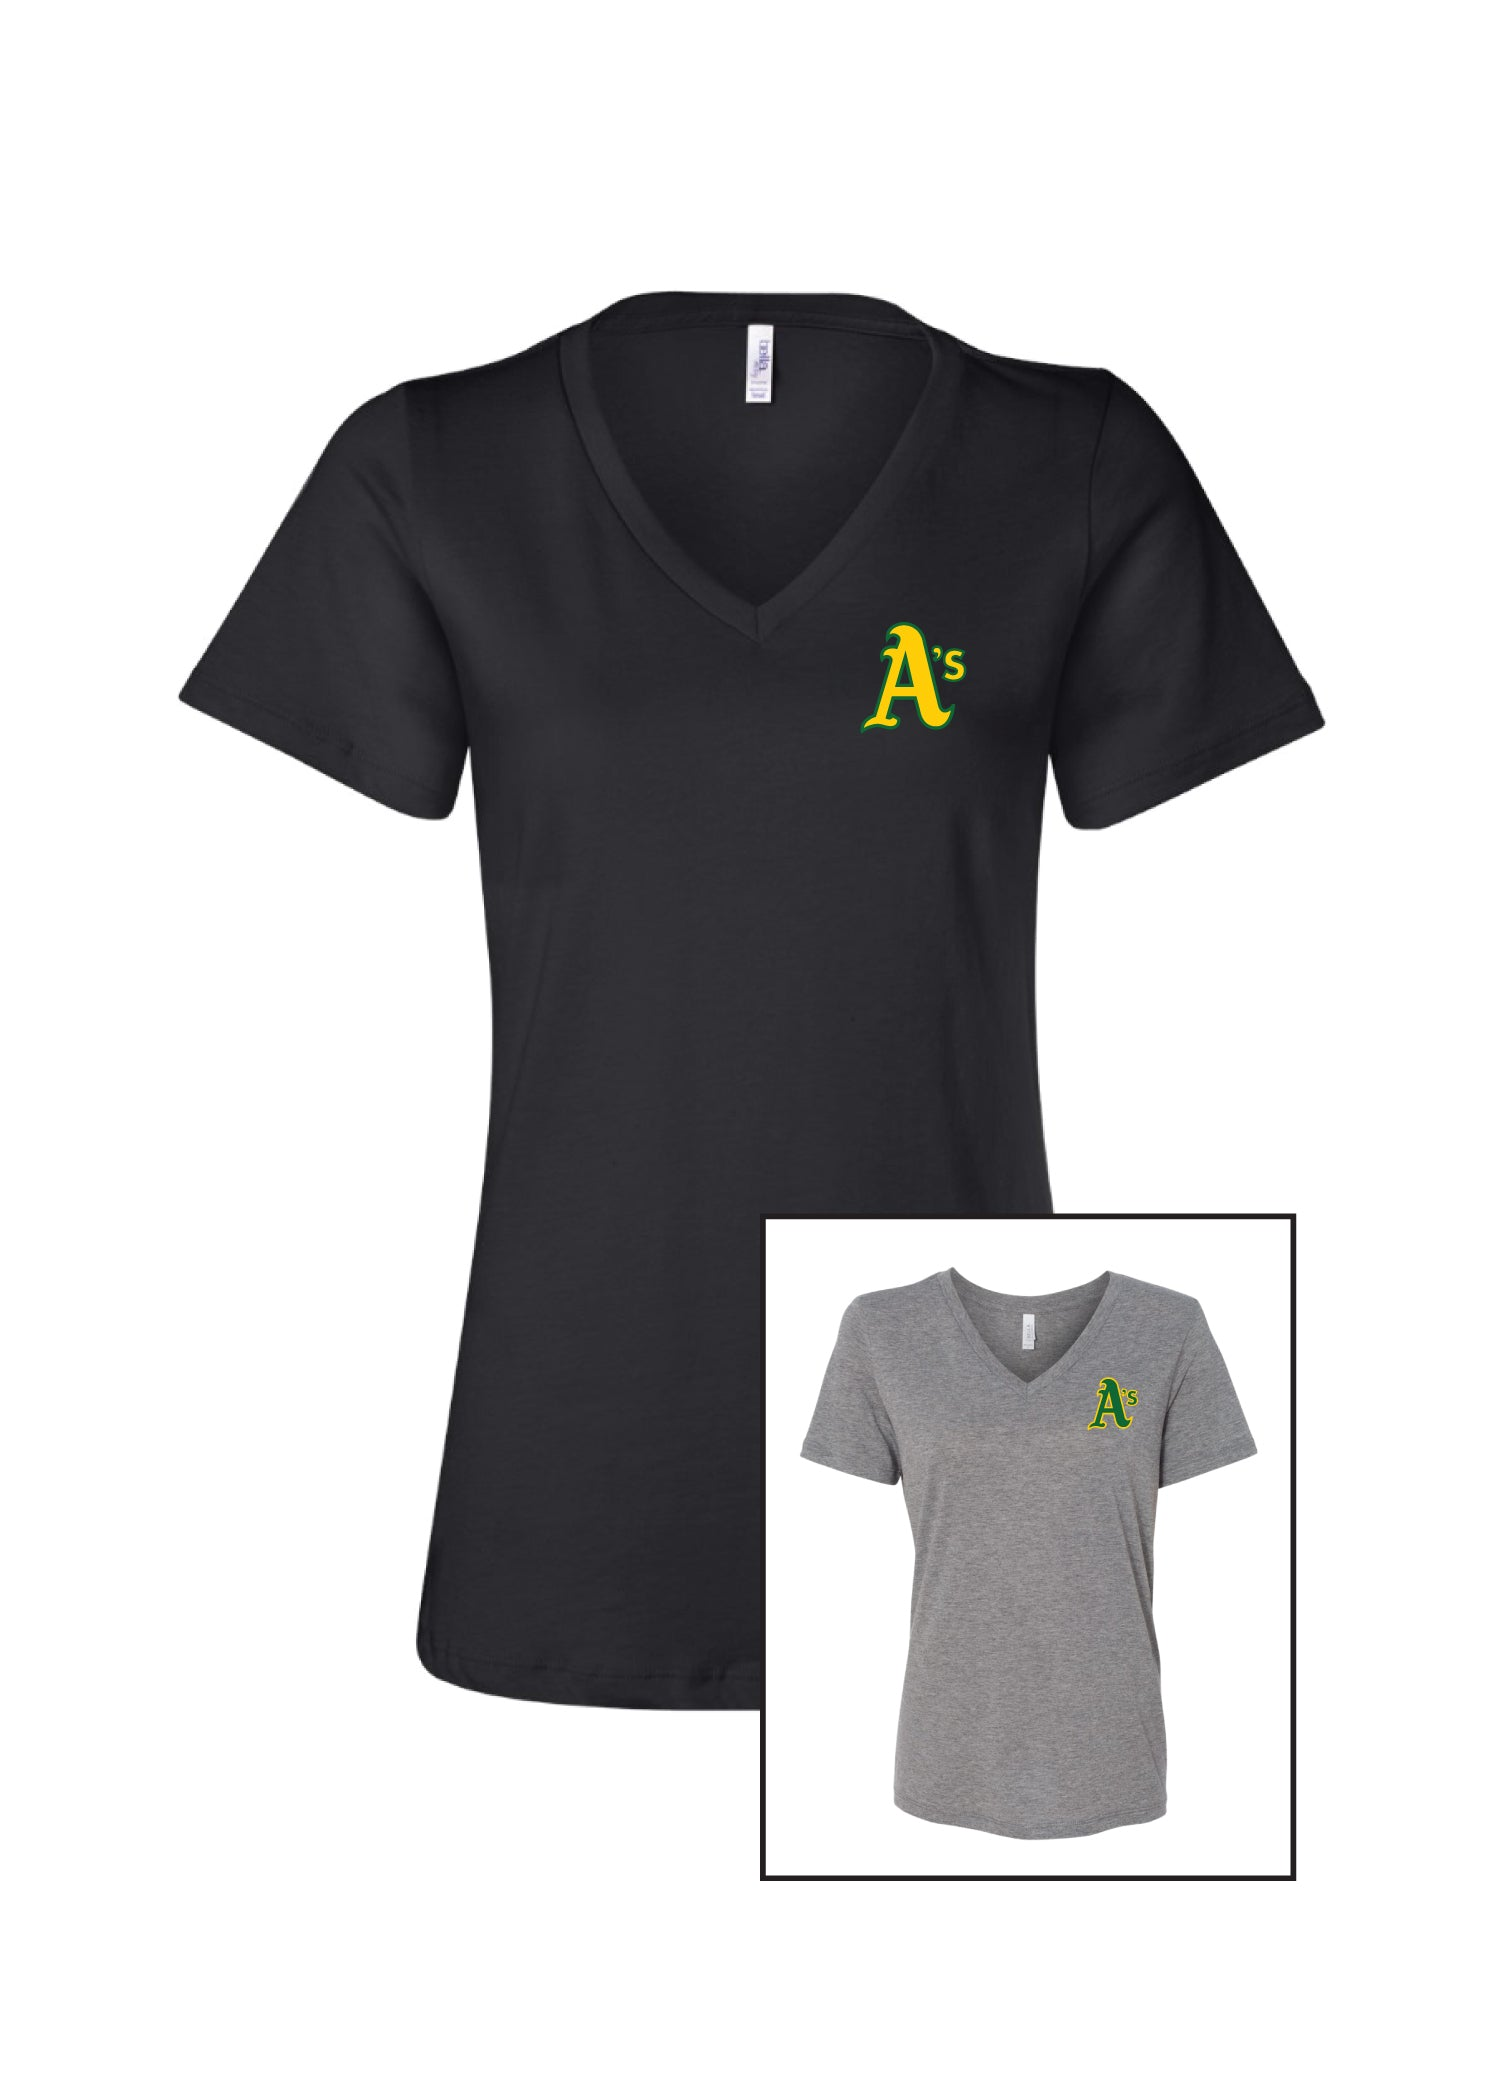 A's Women's V Neck Cotton T-Shirt